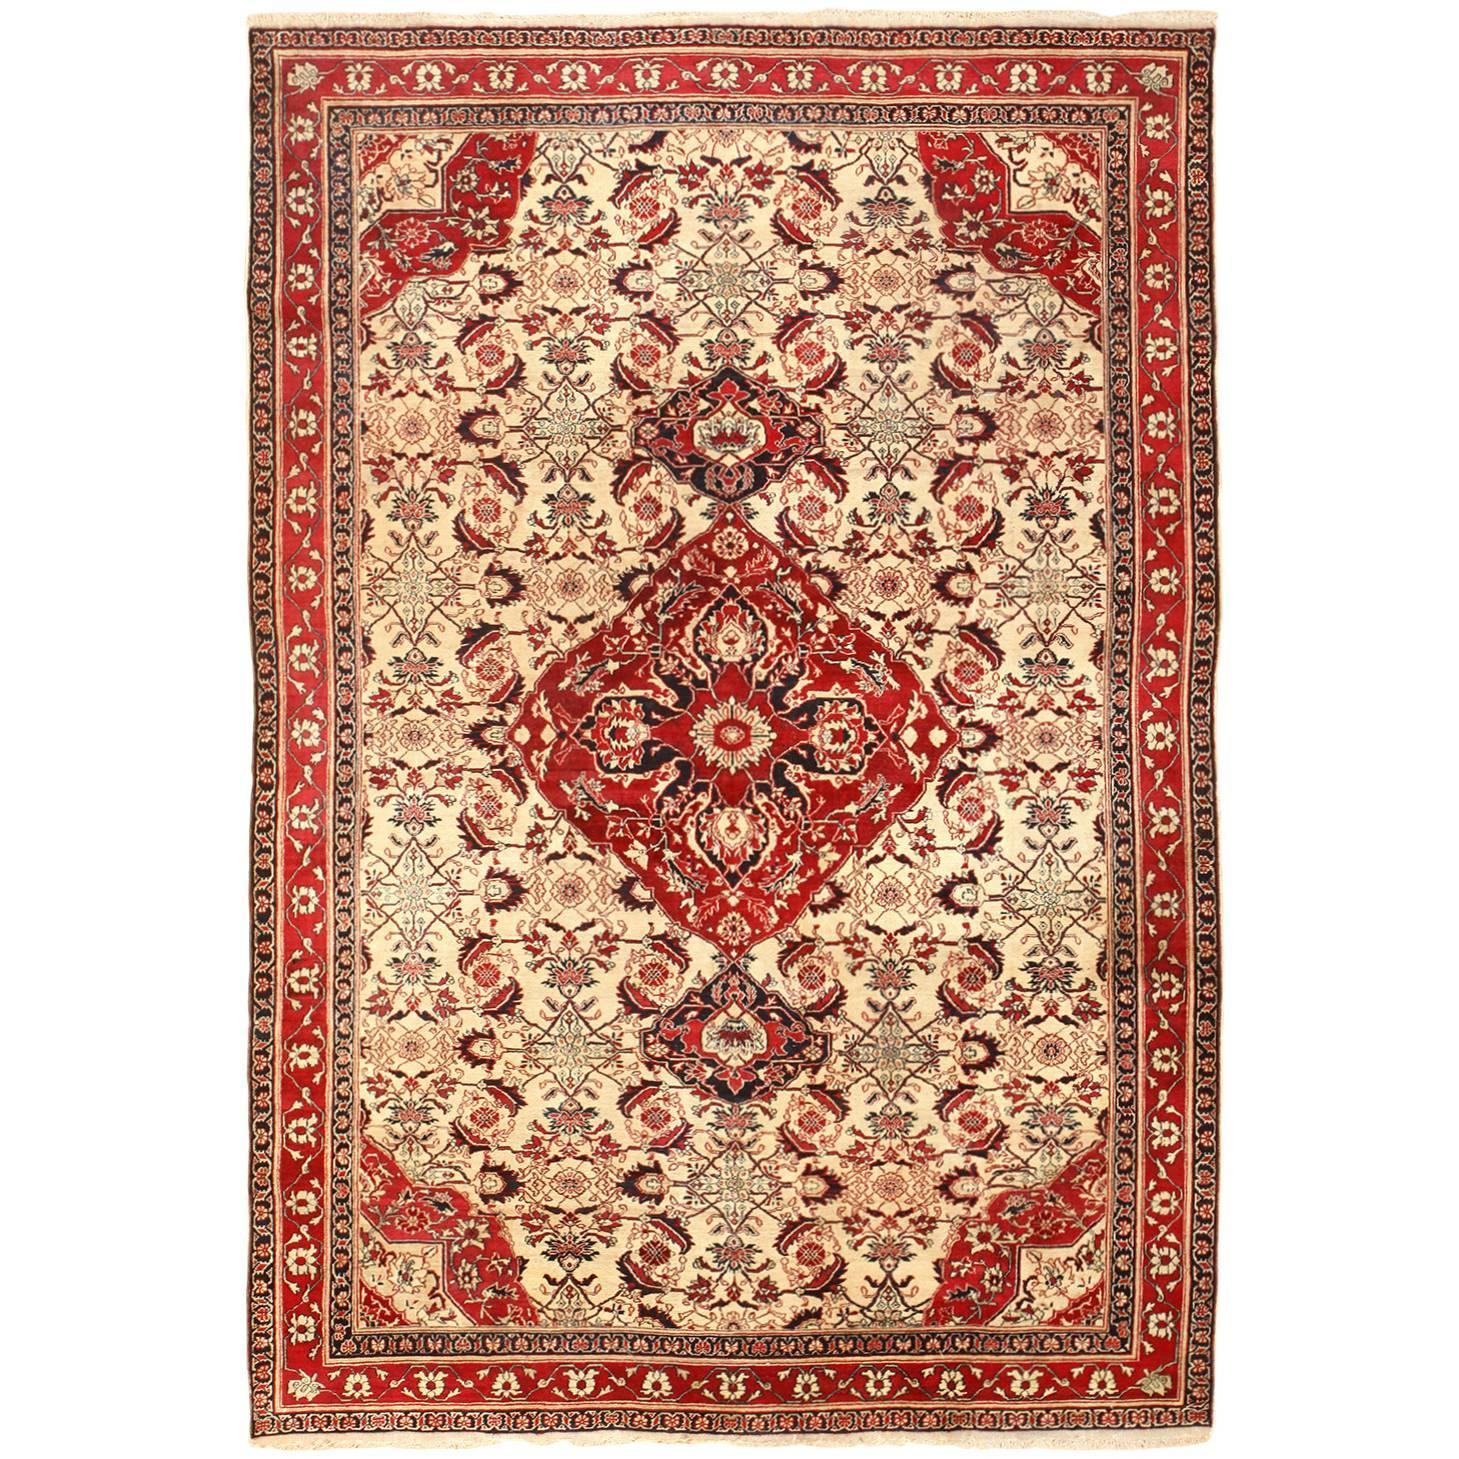 Fine Antique Indian Agra Rug For Sale At 1stdibs